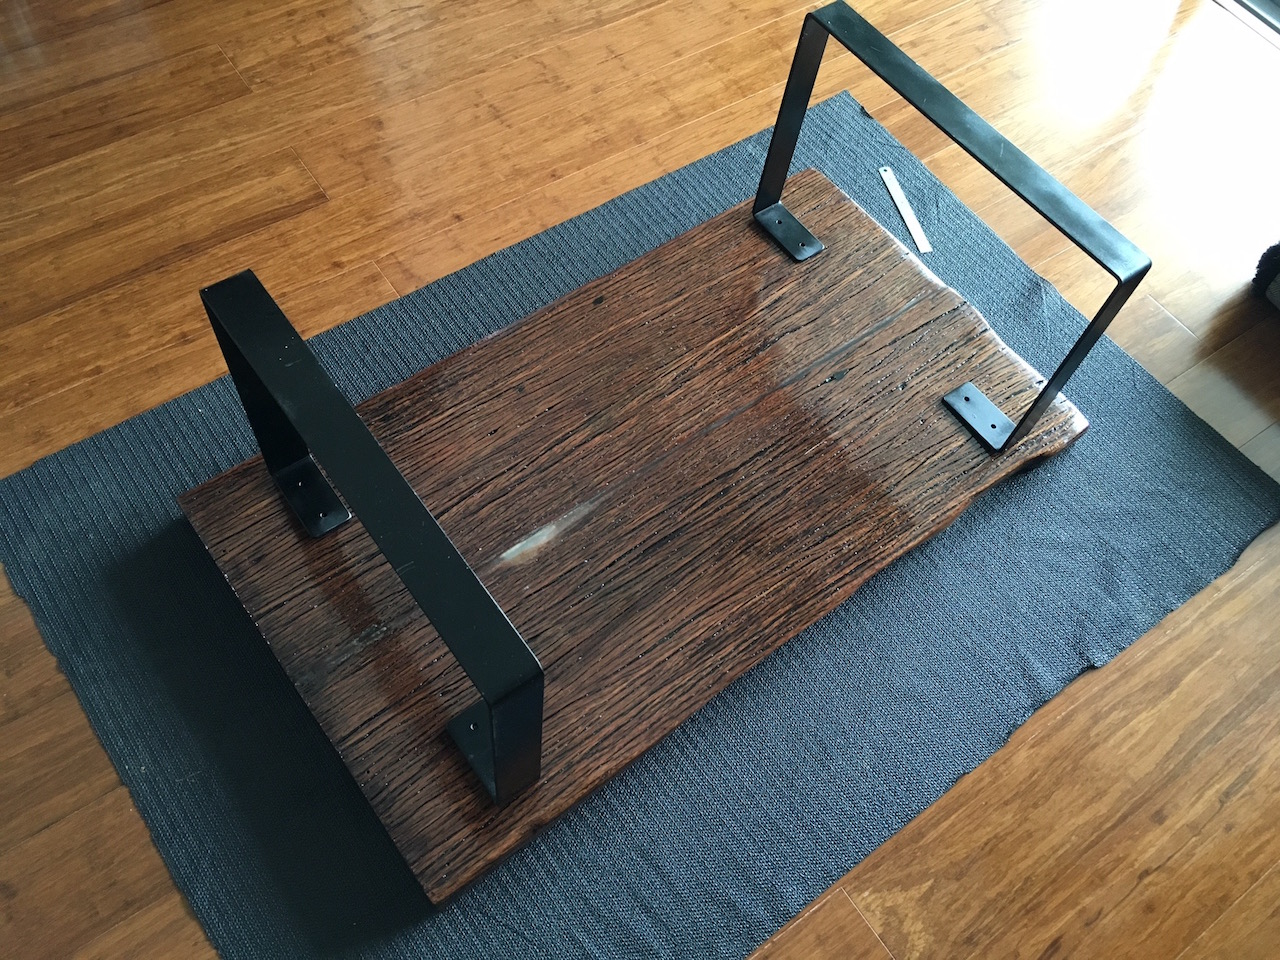 Wonderful image of DIY Hardwood Coffee Table made out of recycled wood (part 4) Igor's  with #9E6F2D color and 1280x960 pixels